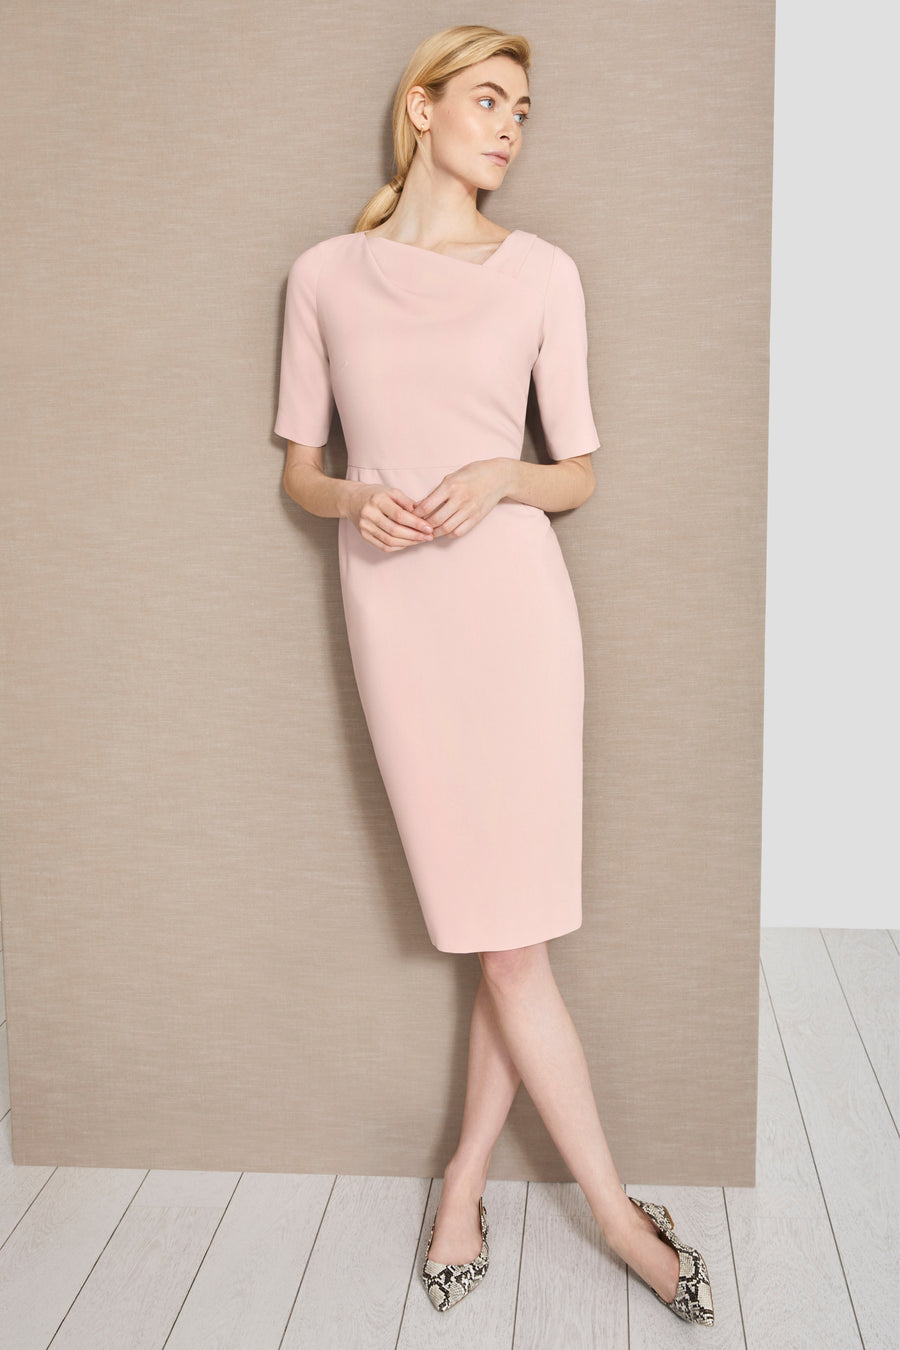 Thurloe Pink Dress